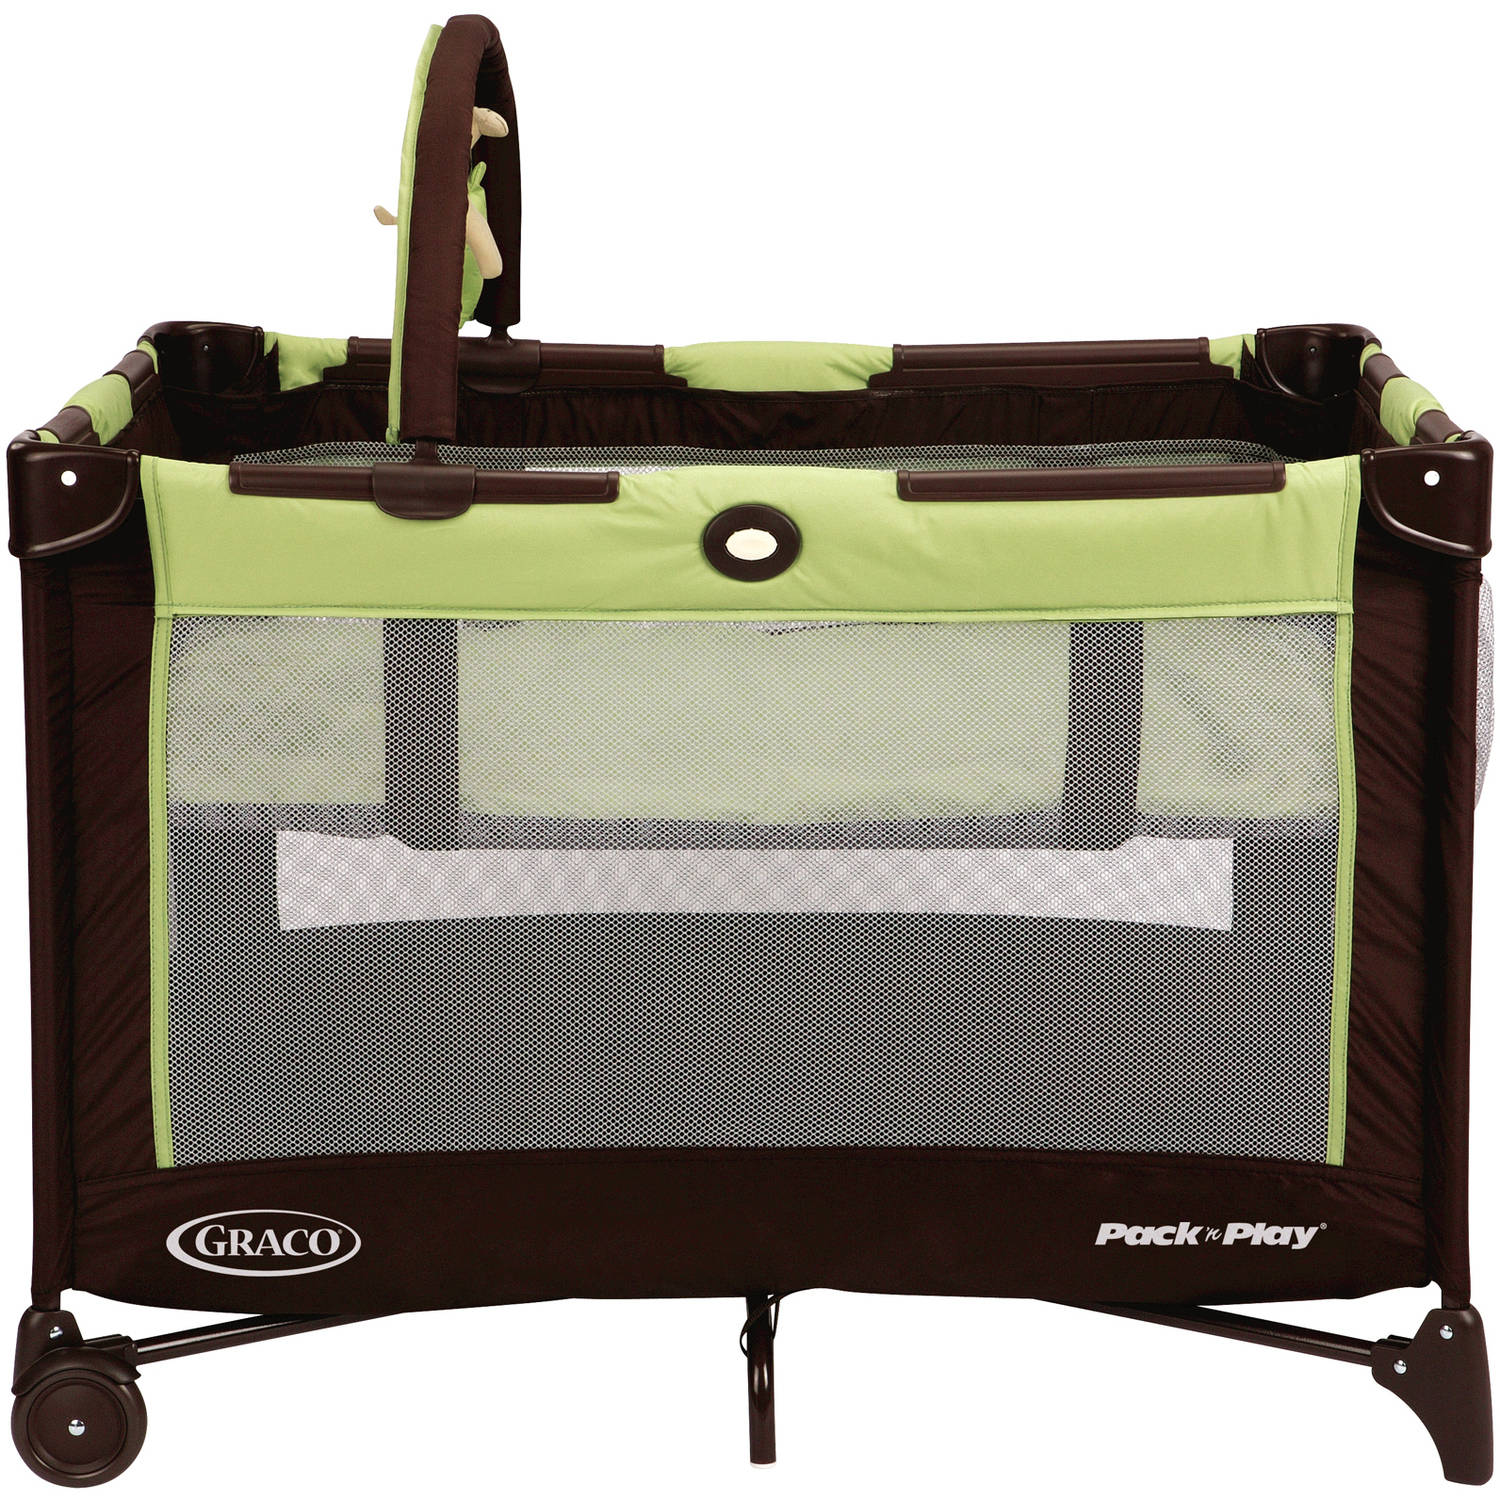 go m graco the topics best babygearlab n pack crib on travel getting baby cribs play around